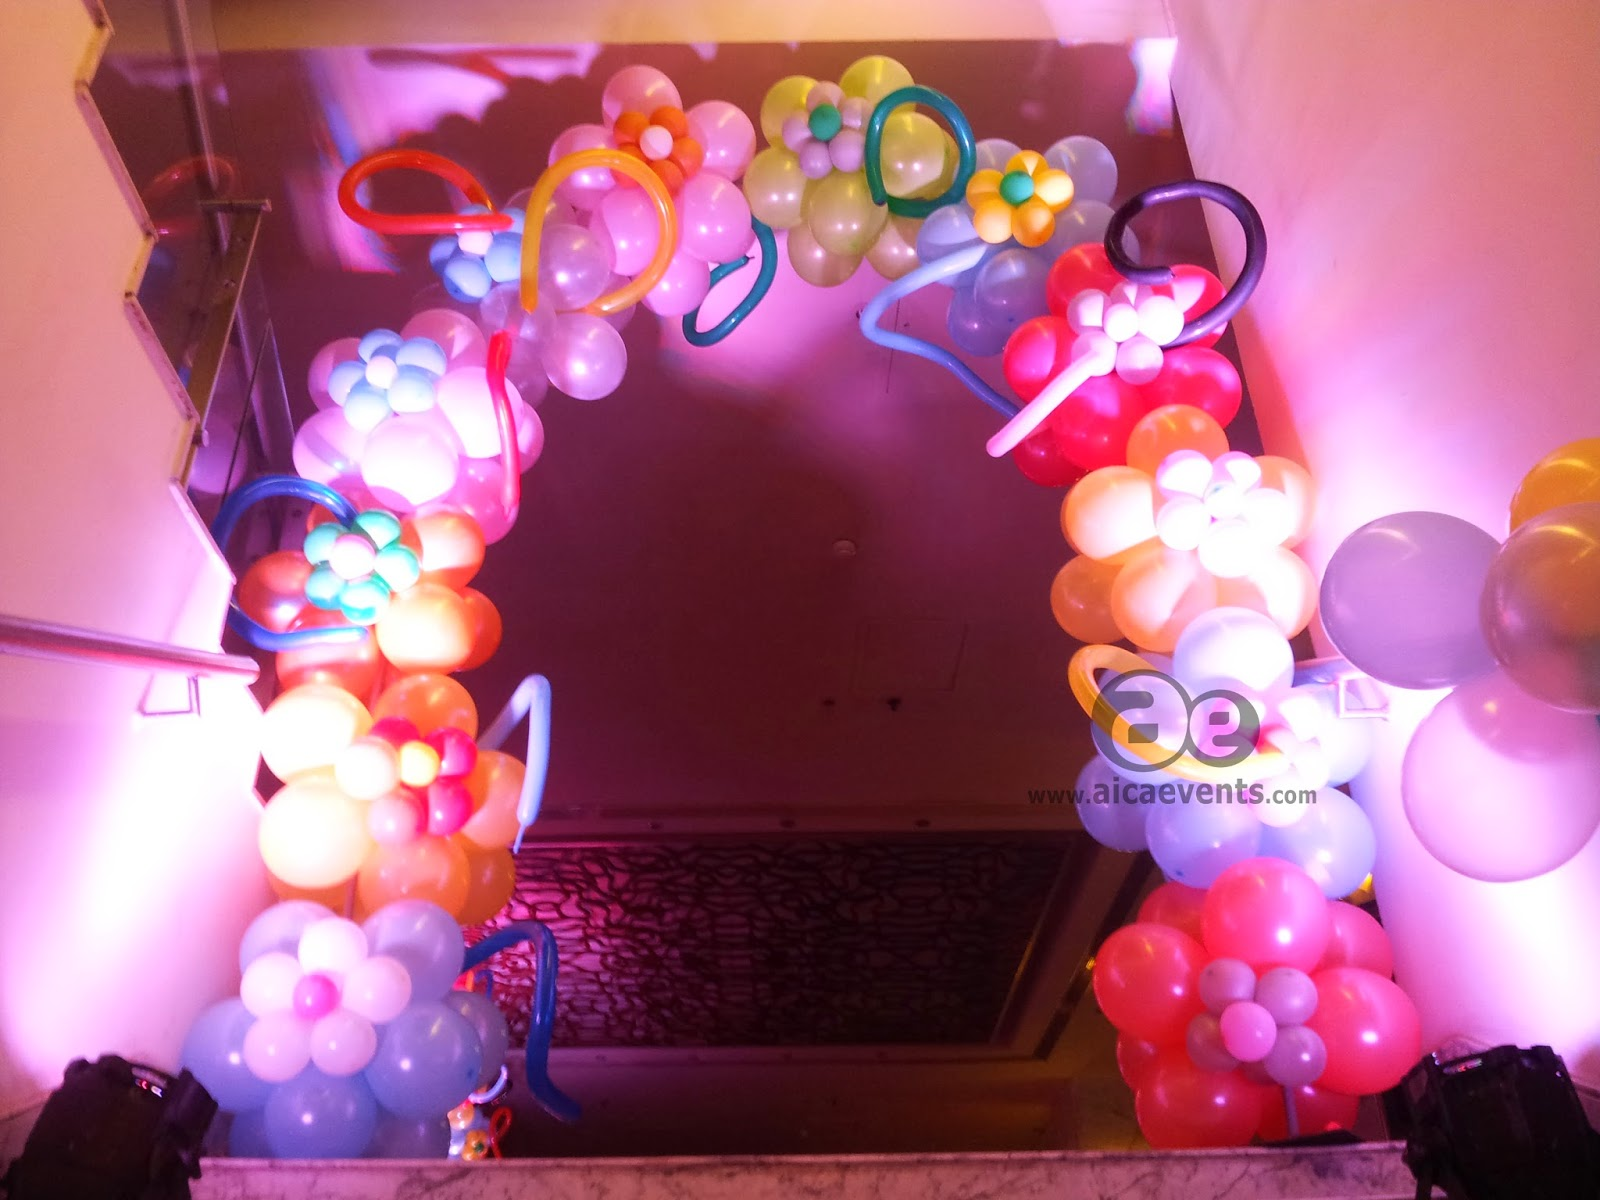 aicaevents: Balloon Decorations for Birthday parties